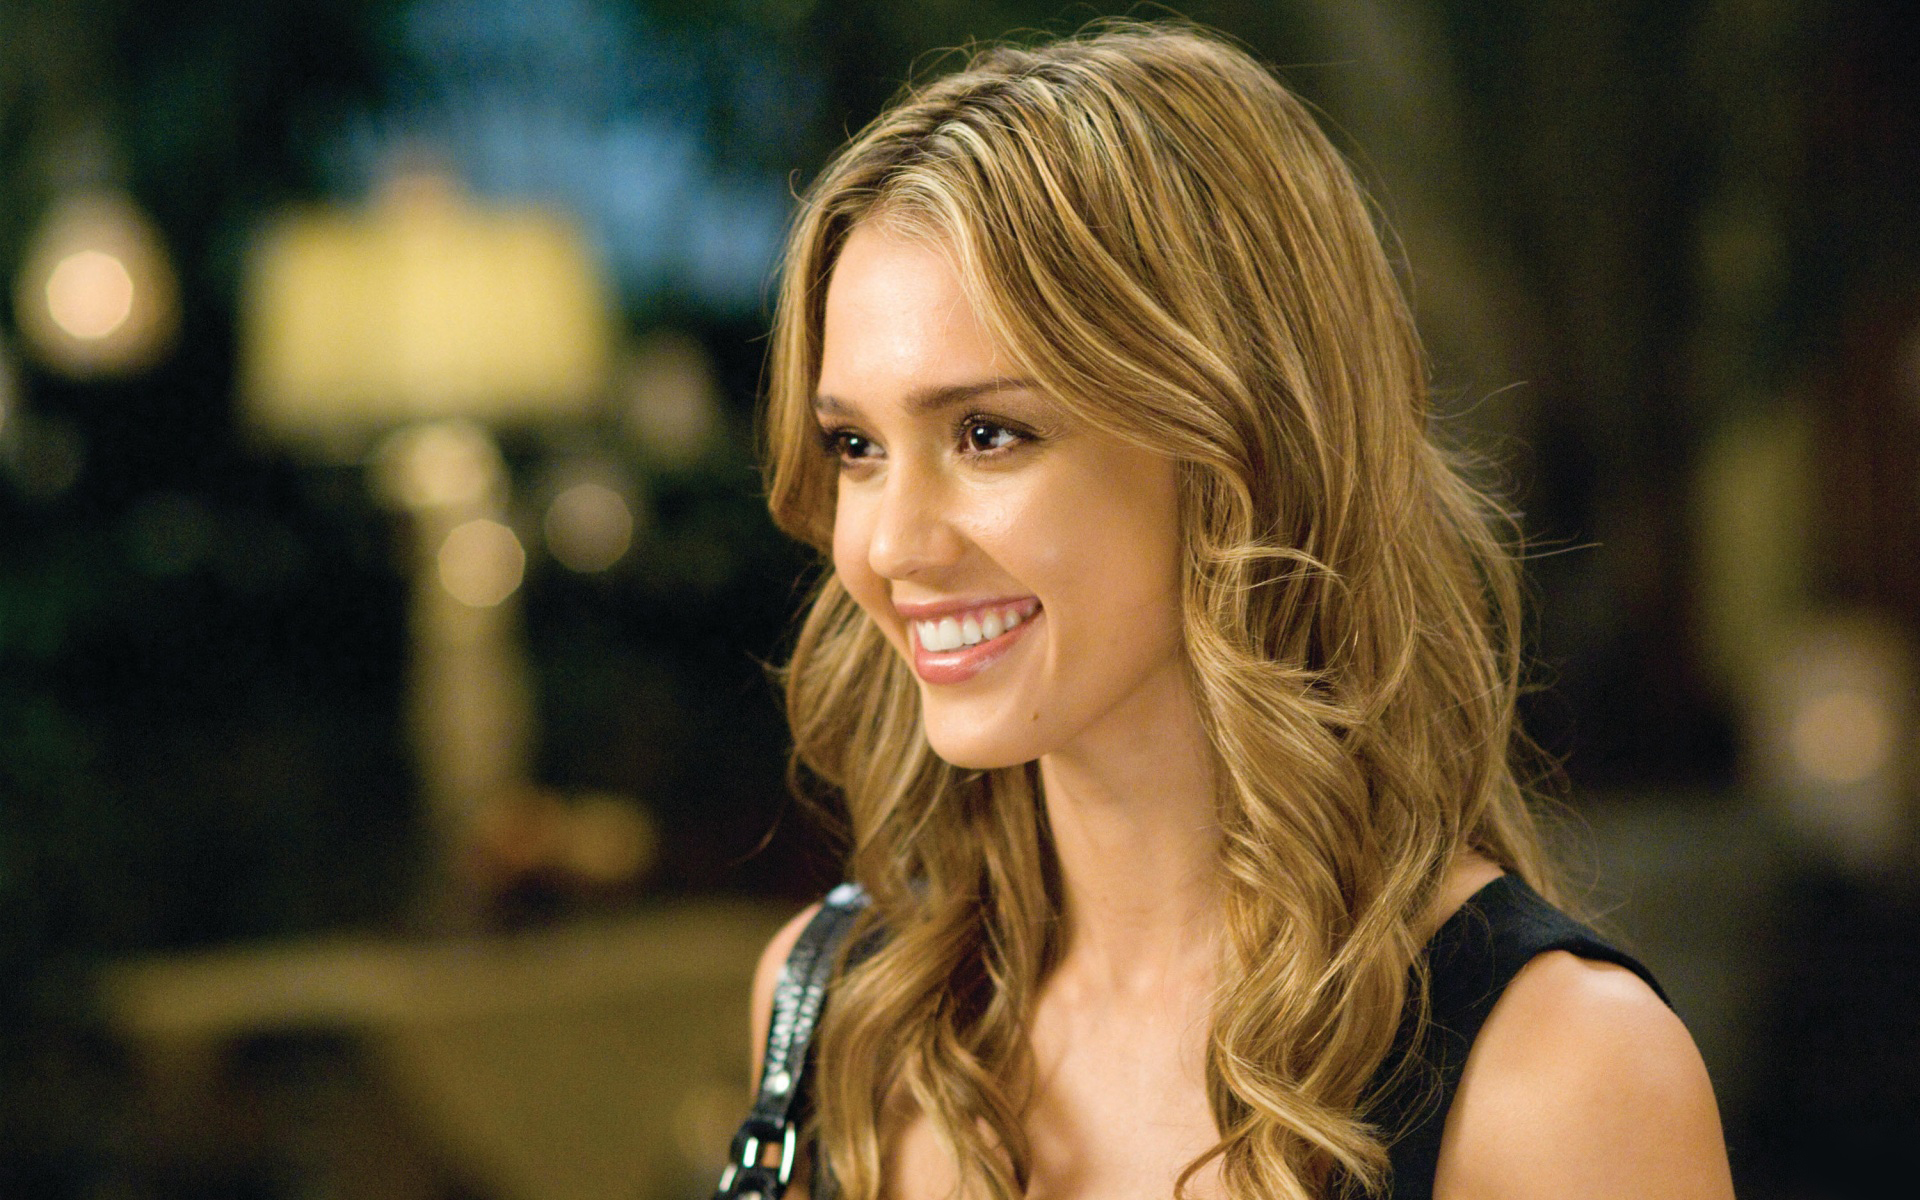 jessica-alba-hd-pic-free-download